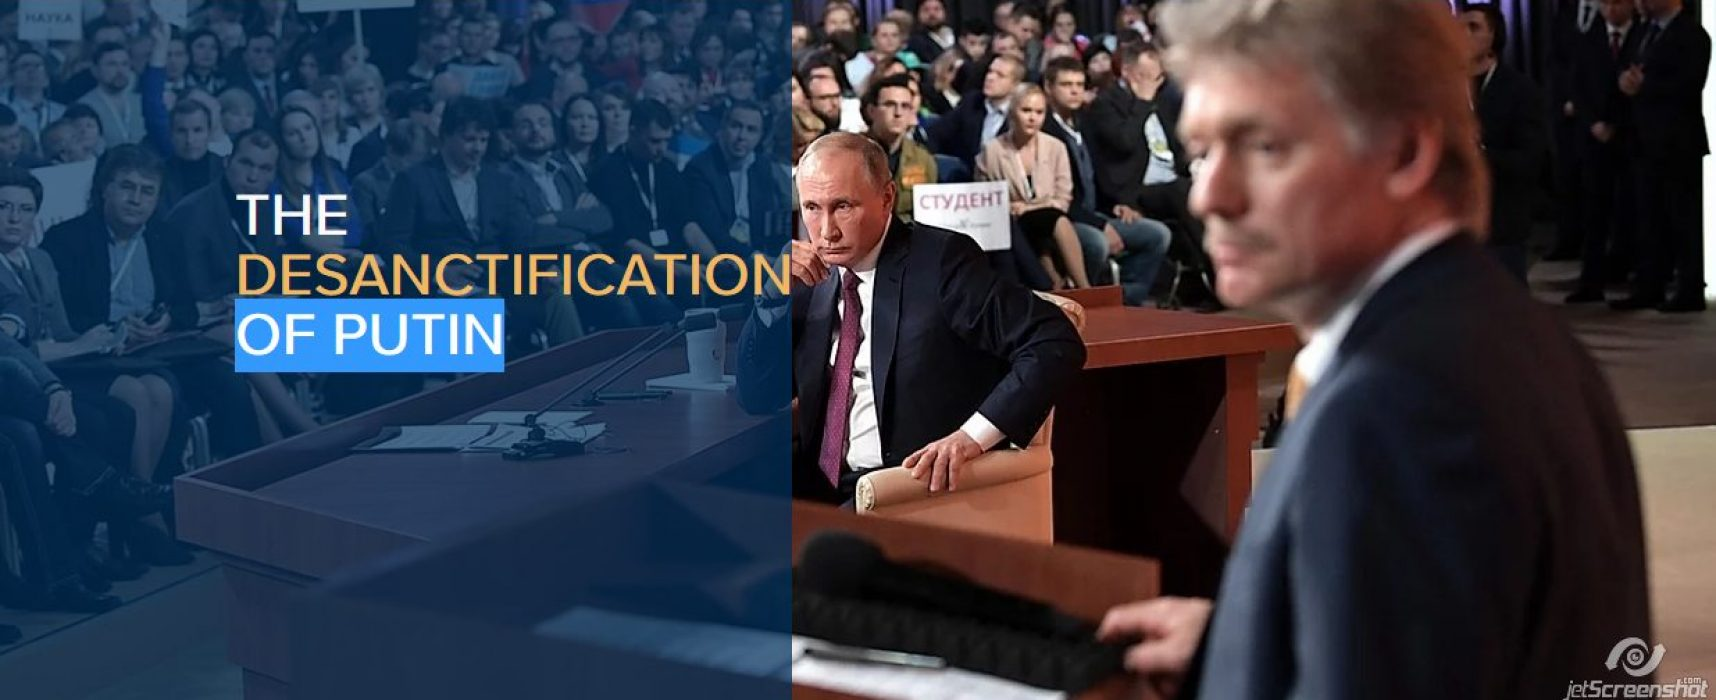 The desanctification of Putin